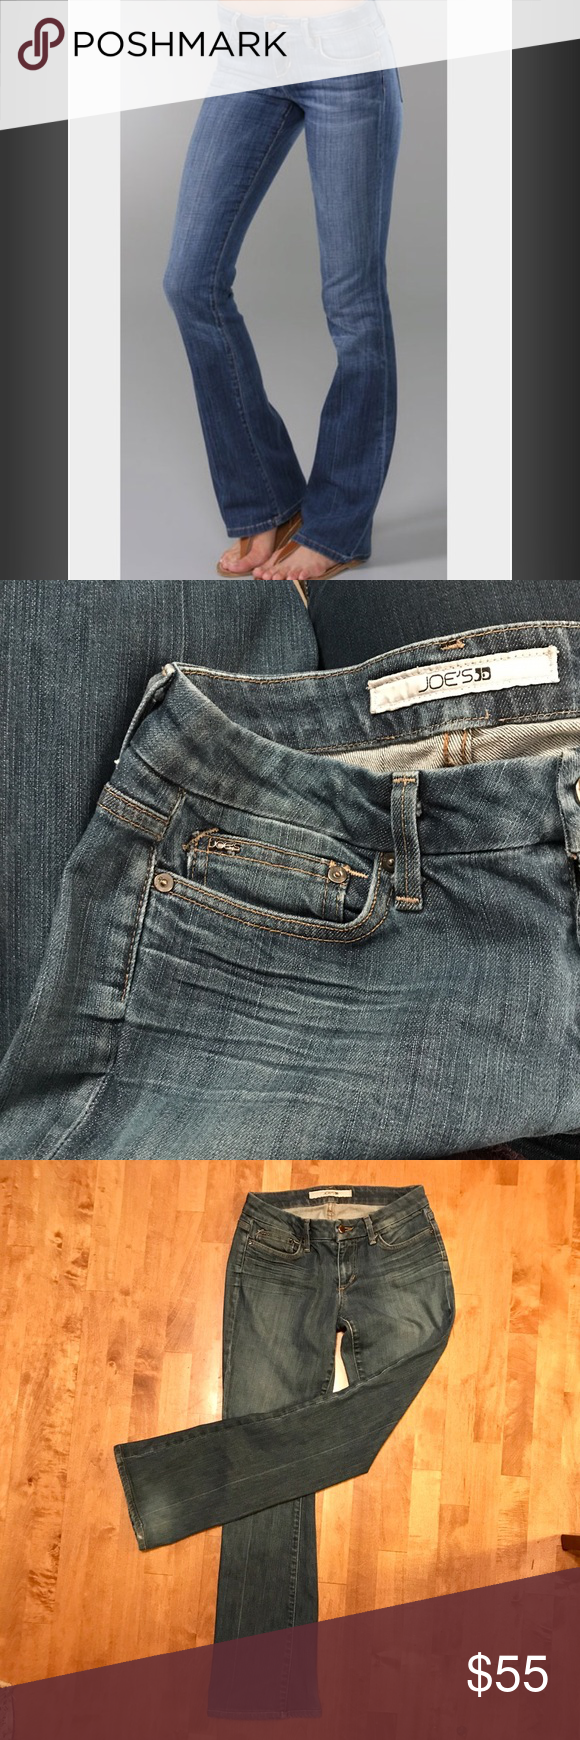 """🌷Joes Jeans Honey Curvy Cut, Size 28 Joes Jeans """"Honey, Frankie"""" curvy cut jeans. Size 28, regular length. Stretchy, comfy jeans! Minor wear to back of bottom hem only. In excellent, gently worn condition. No trades. Joe's Jeans Jeans Boot Cut"""